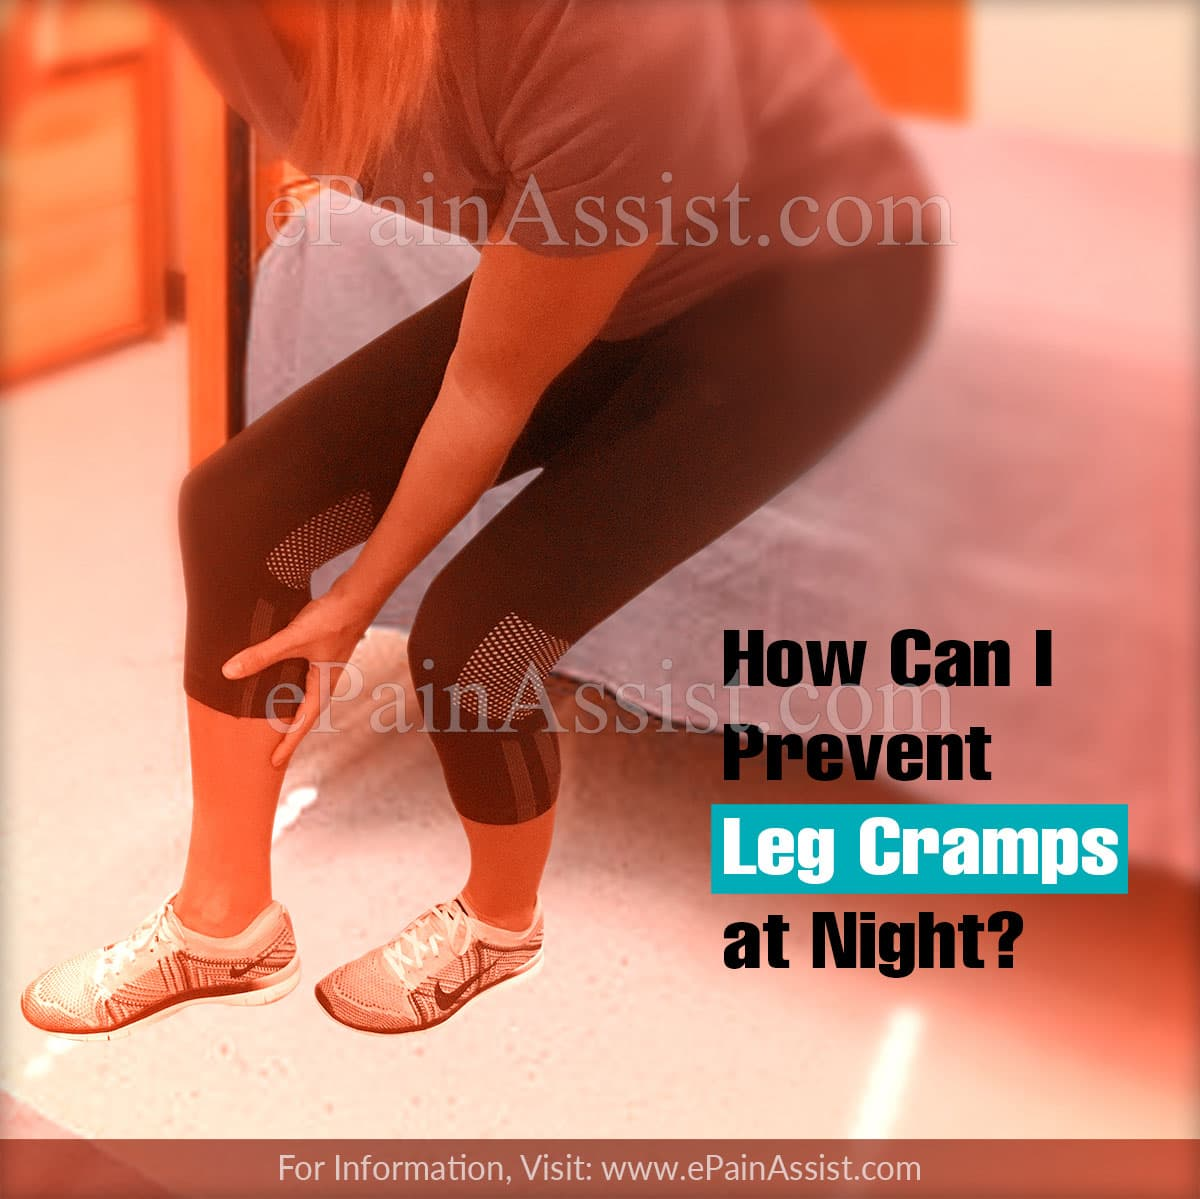 How Can I Prevent Leg Cramps at Night?